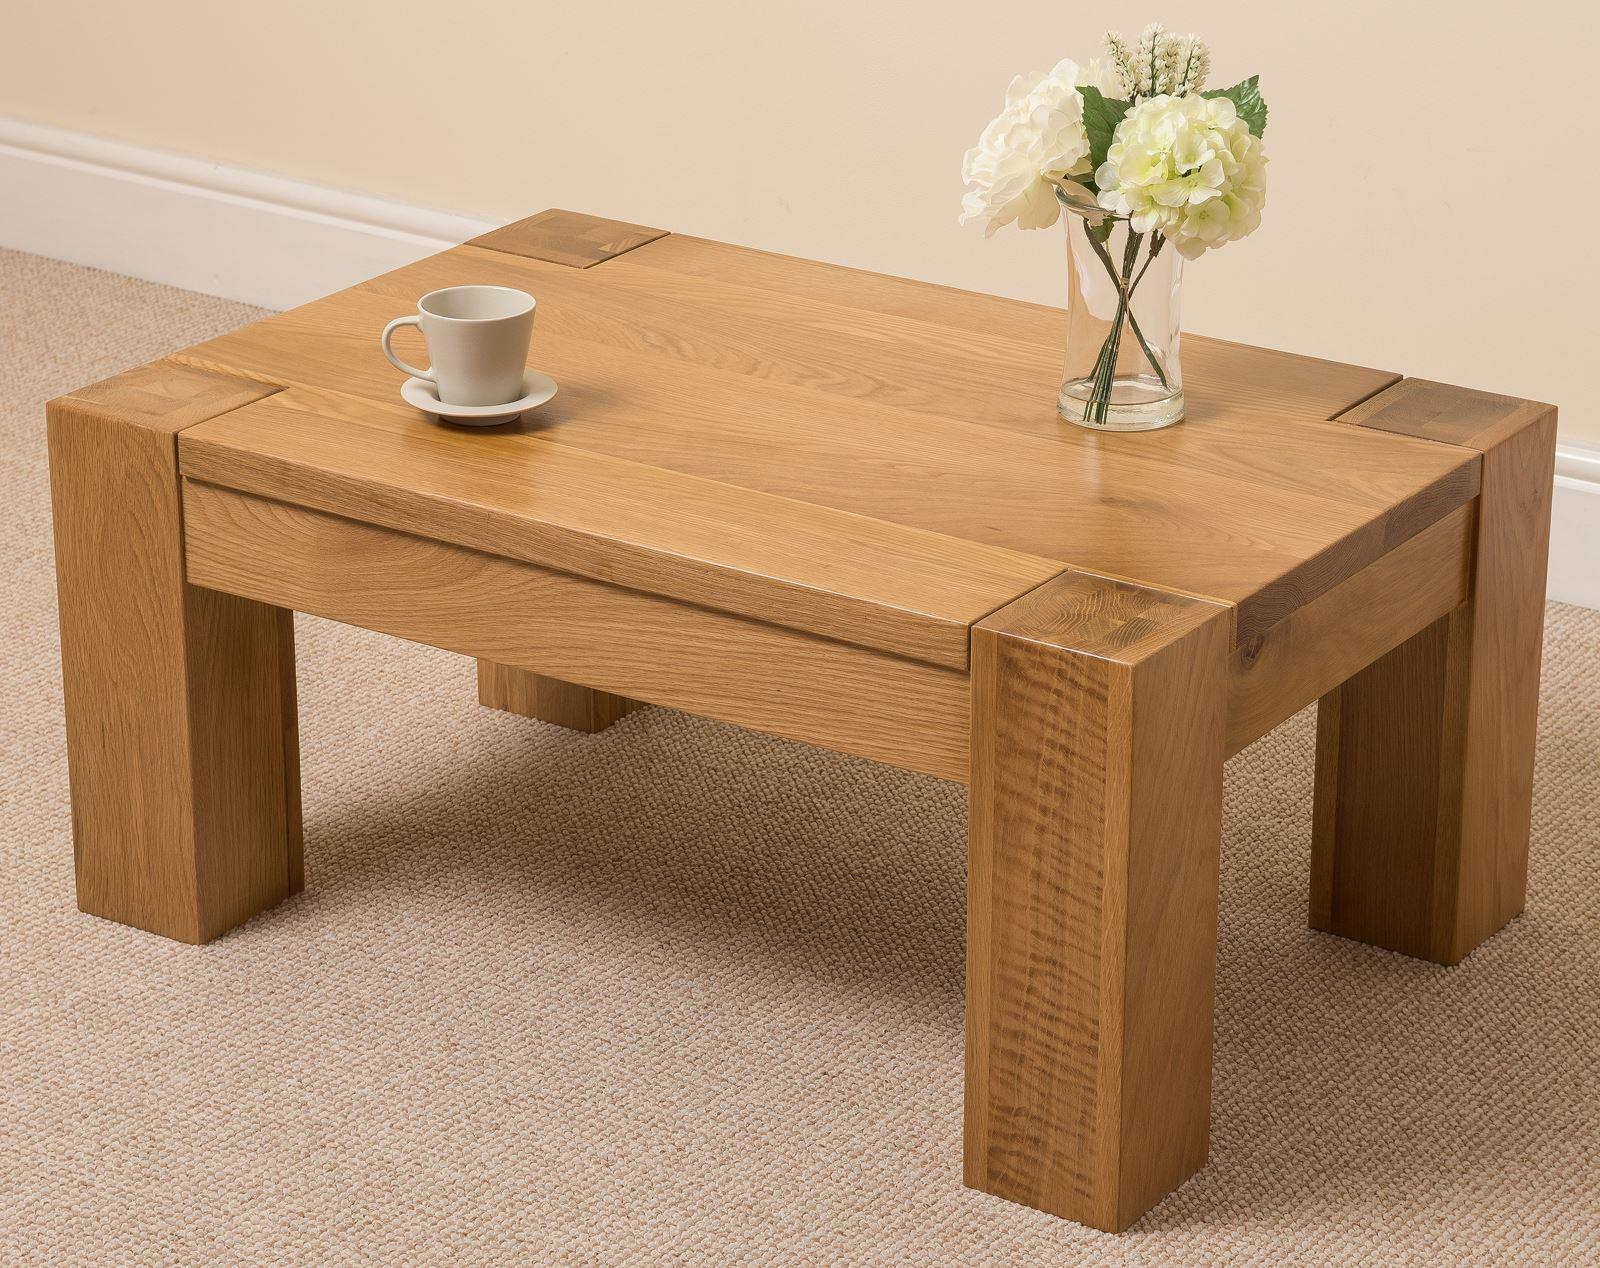 Kuba Solid Oak Coffee Table